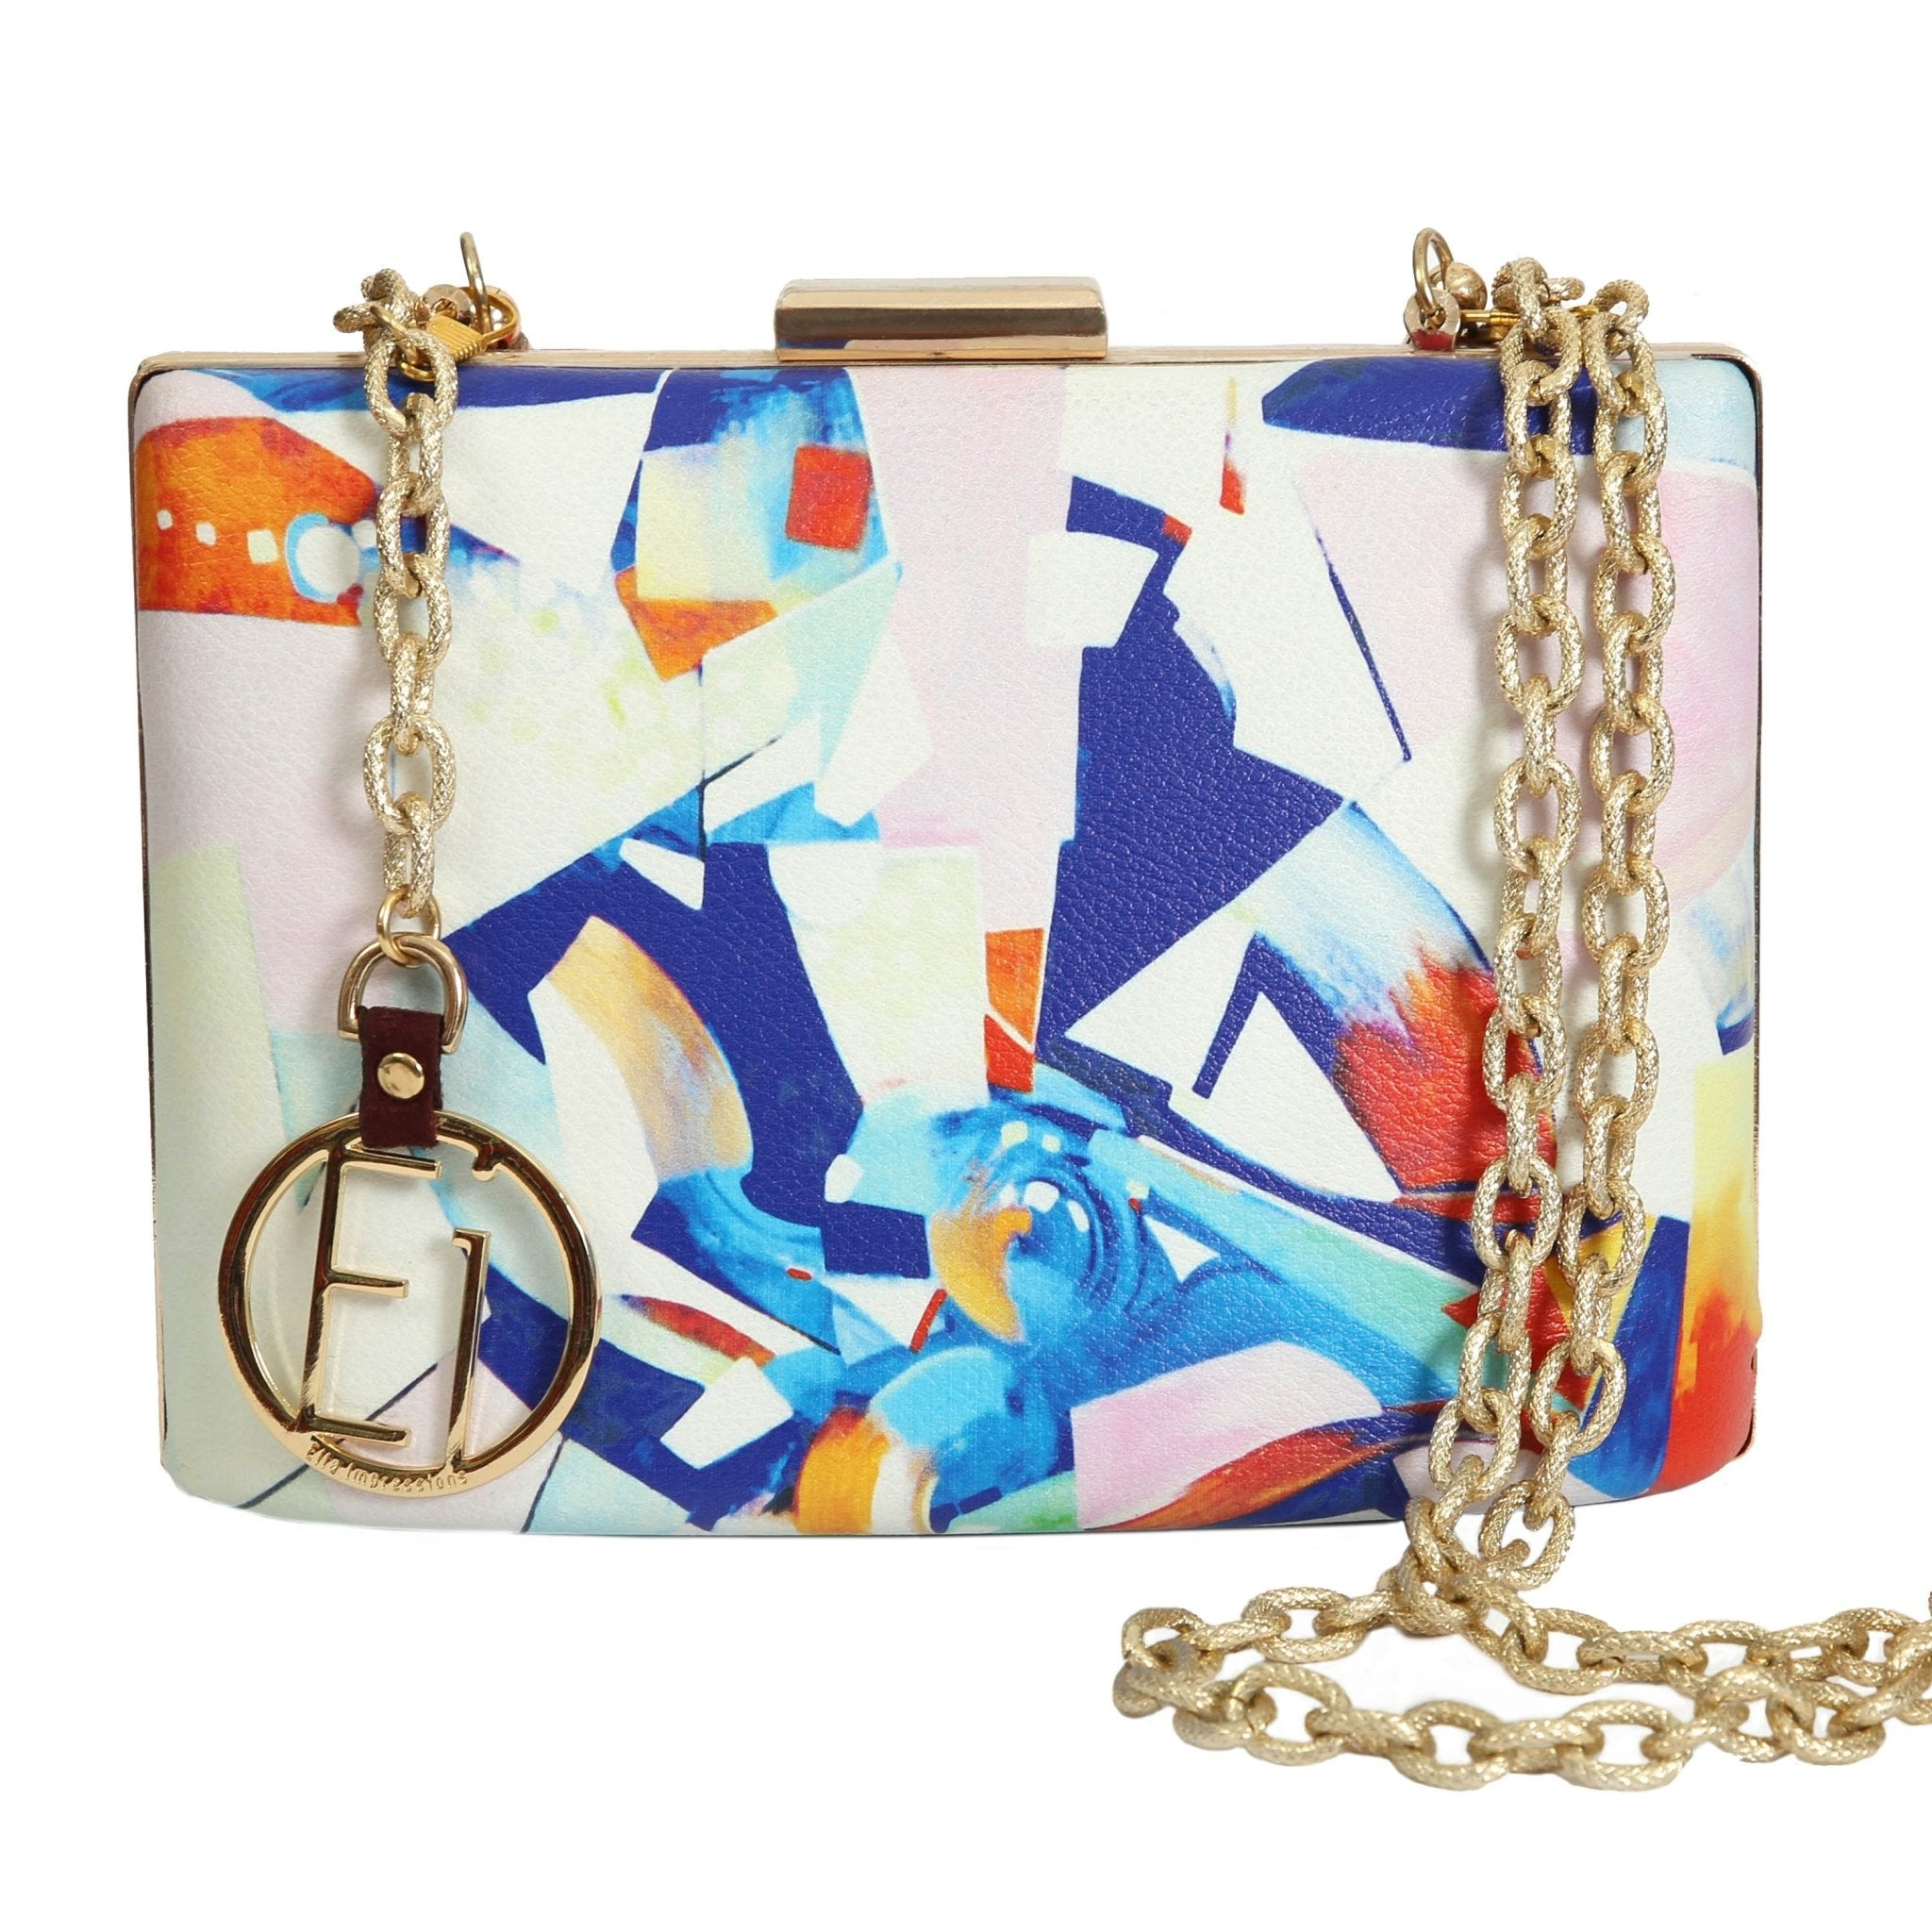 ENERGY-ART& DESIGN CLUTCH - The Clothing LoungeElla Impressions